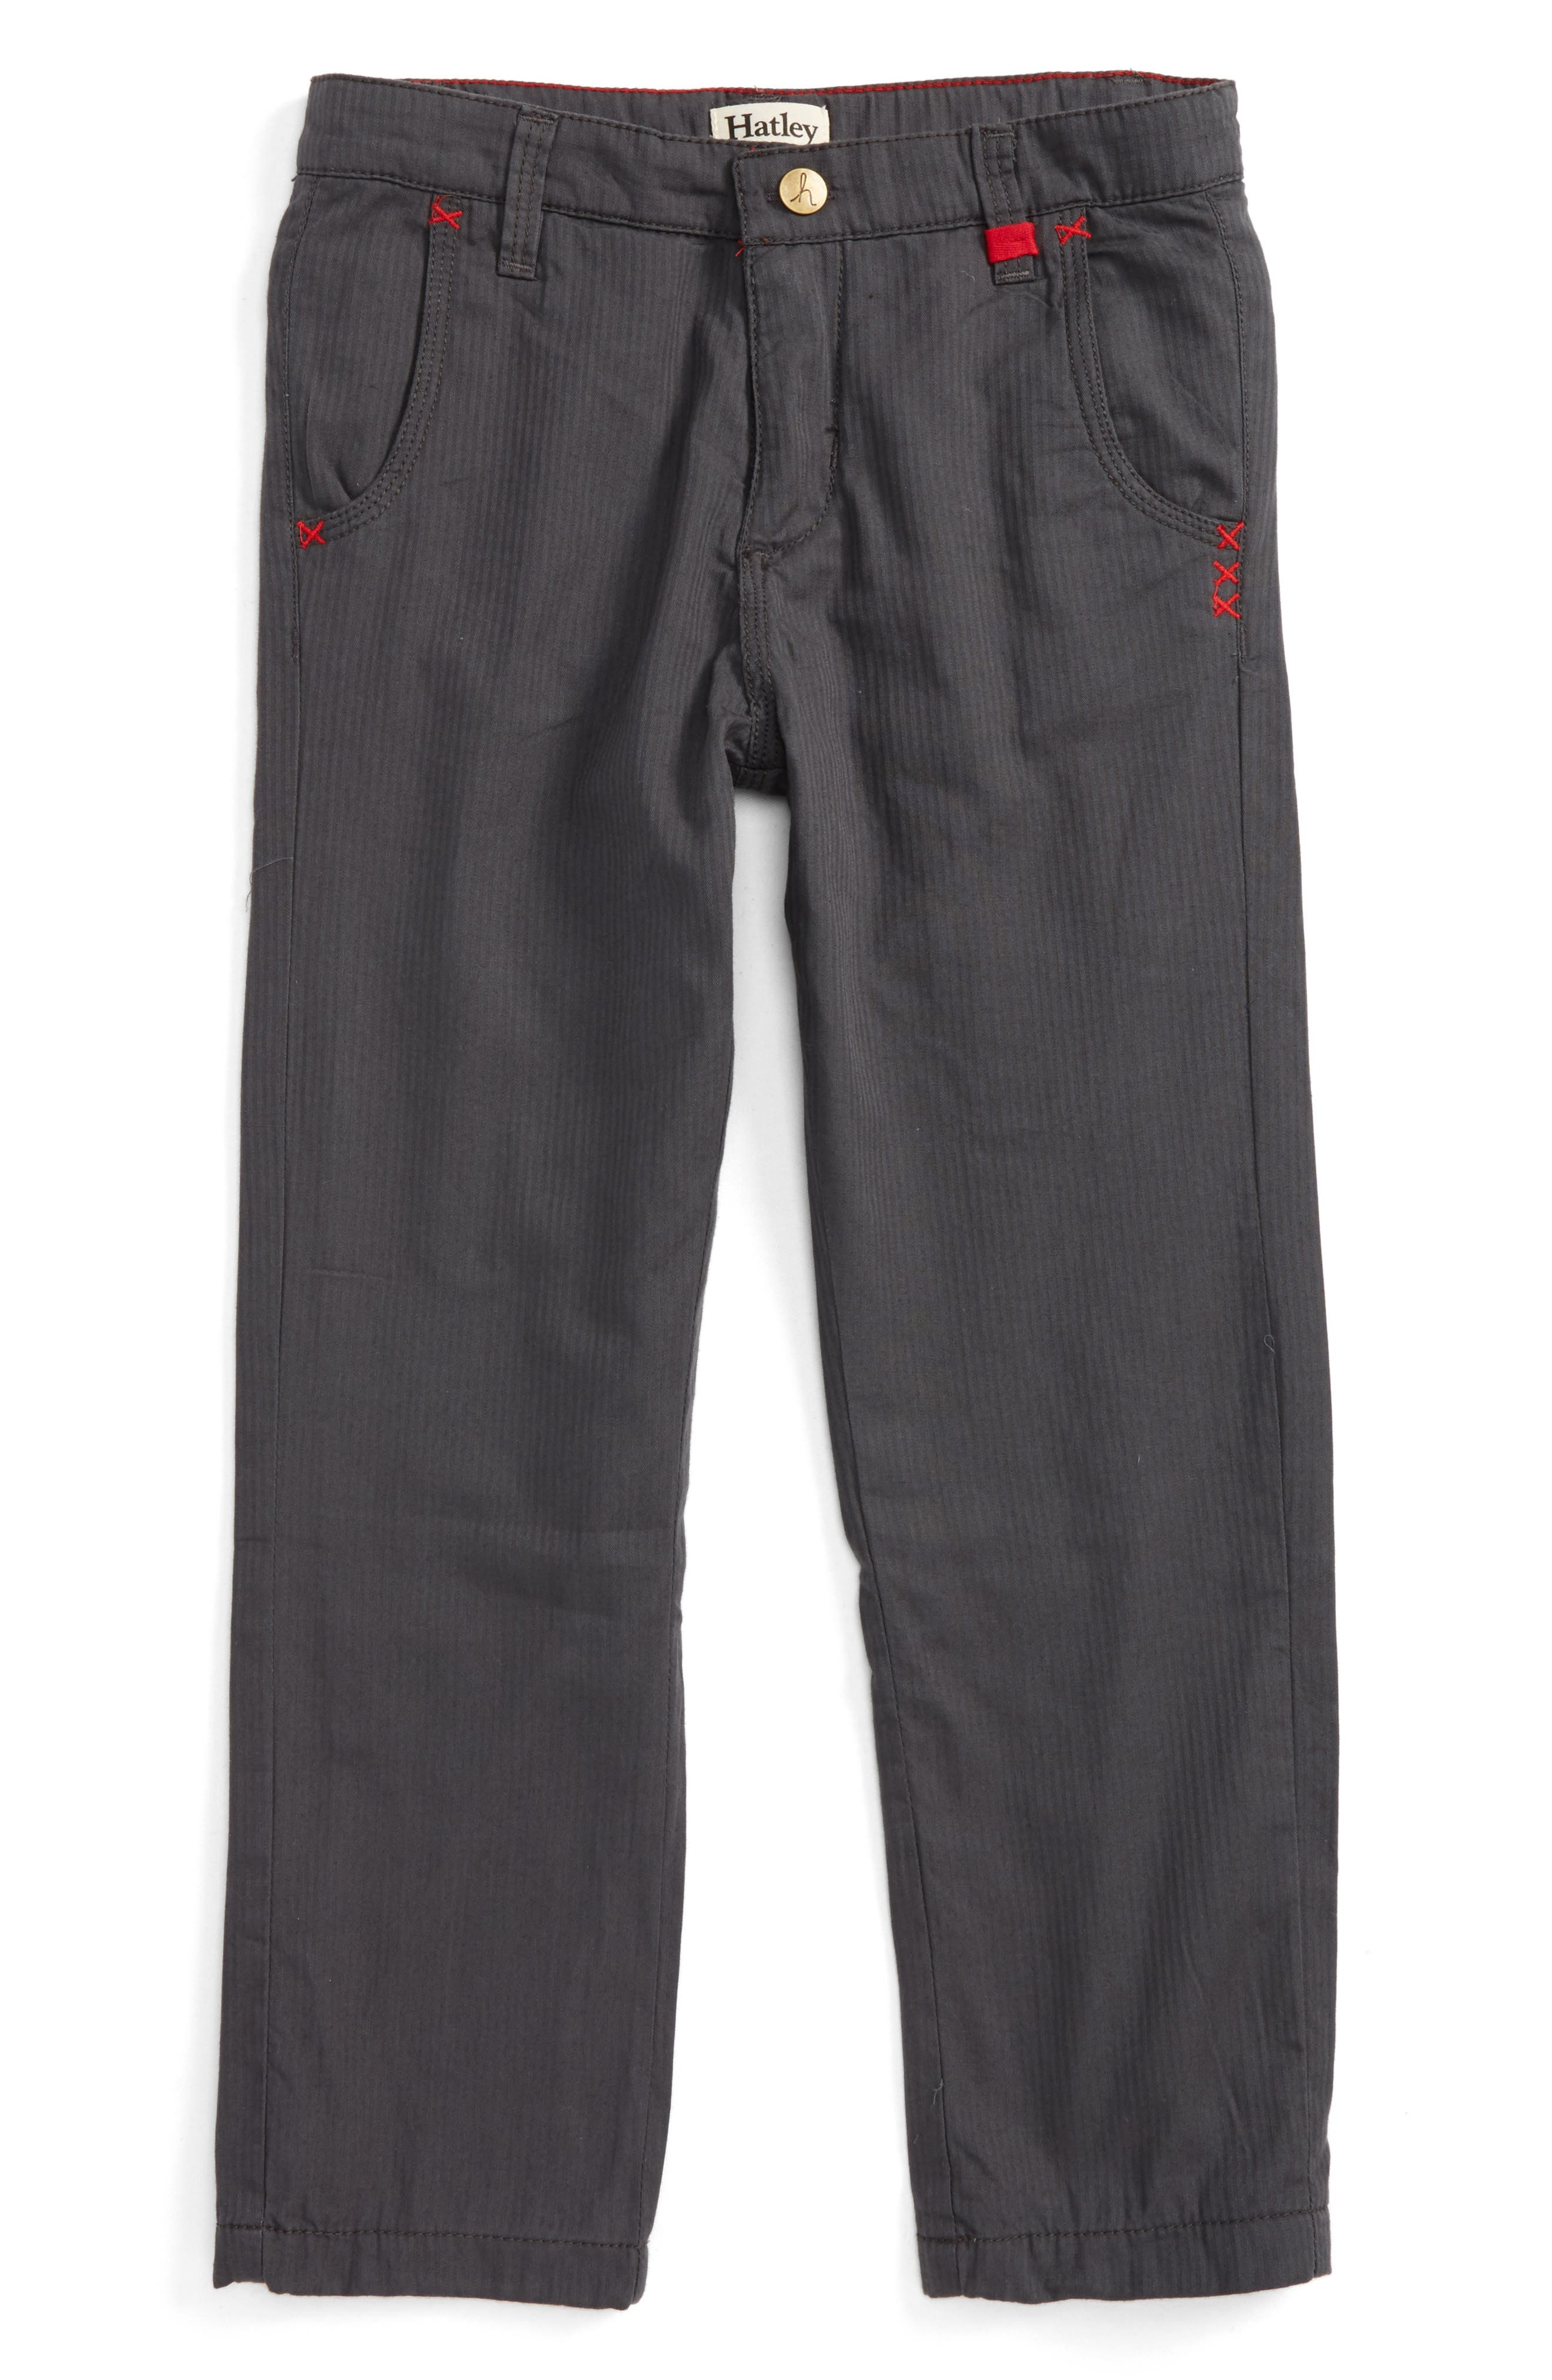 Alternate Image 1 Selected - Hatley Twill Pants (Toddler Boys, Little Boys & Big Boys)